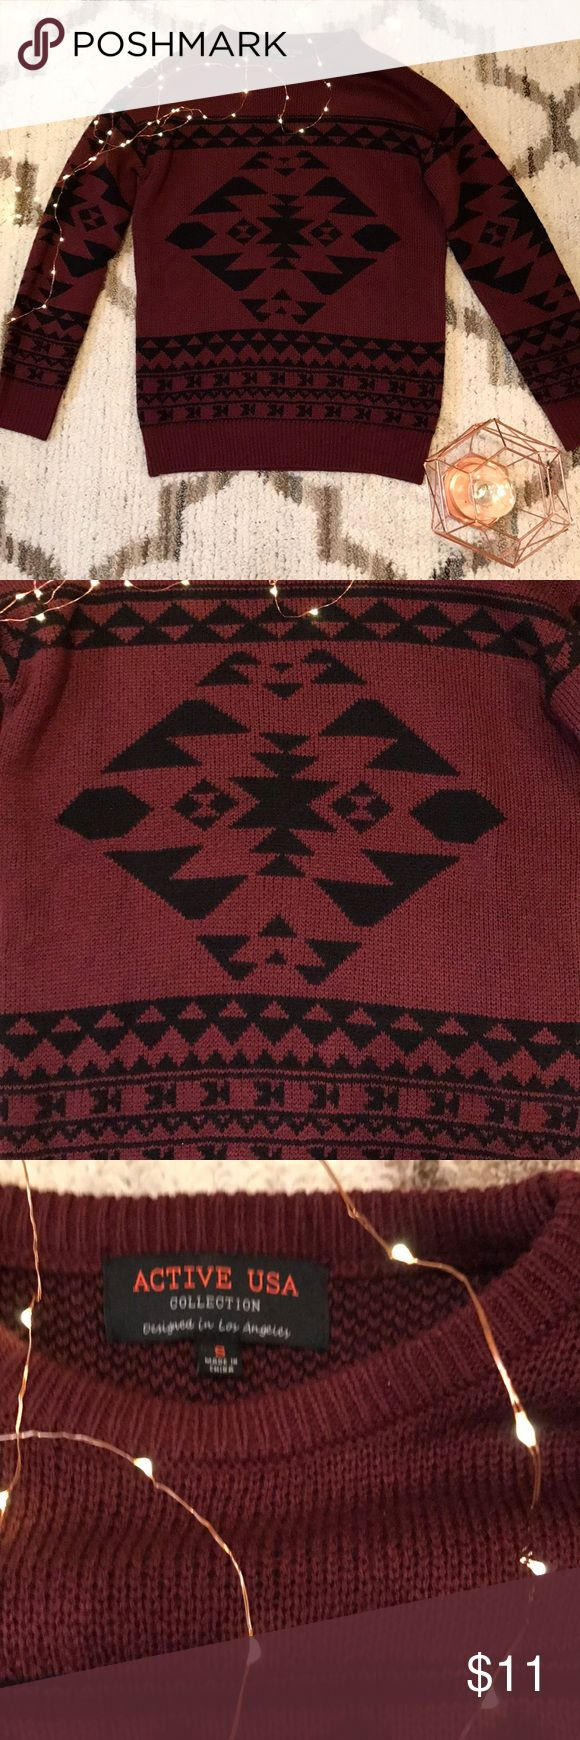 Maroon and Black Tribal Print Sweater Maroon and Black Tribal Print Sweater Never worn and no flaws Brand: Active USA collection Size Small Active USA Collection Sweaters Cowl & Turtlenecks